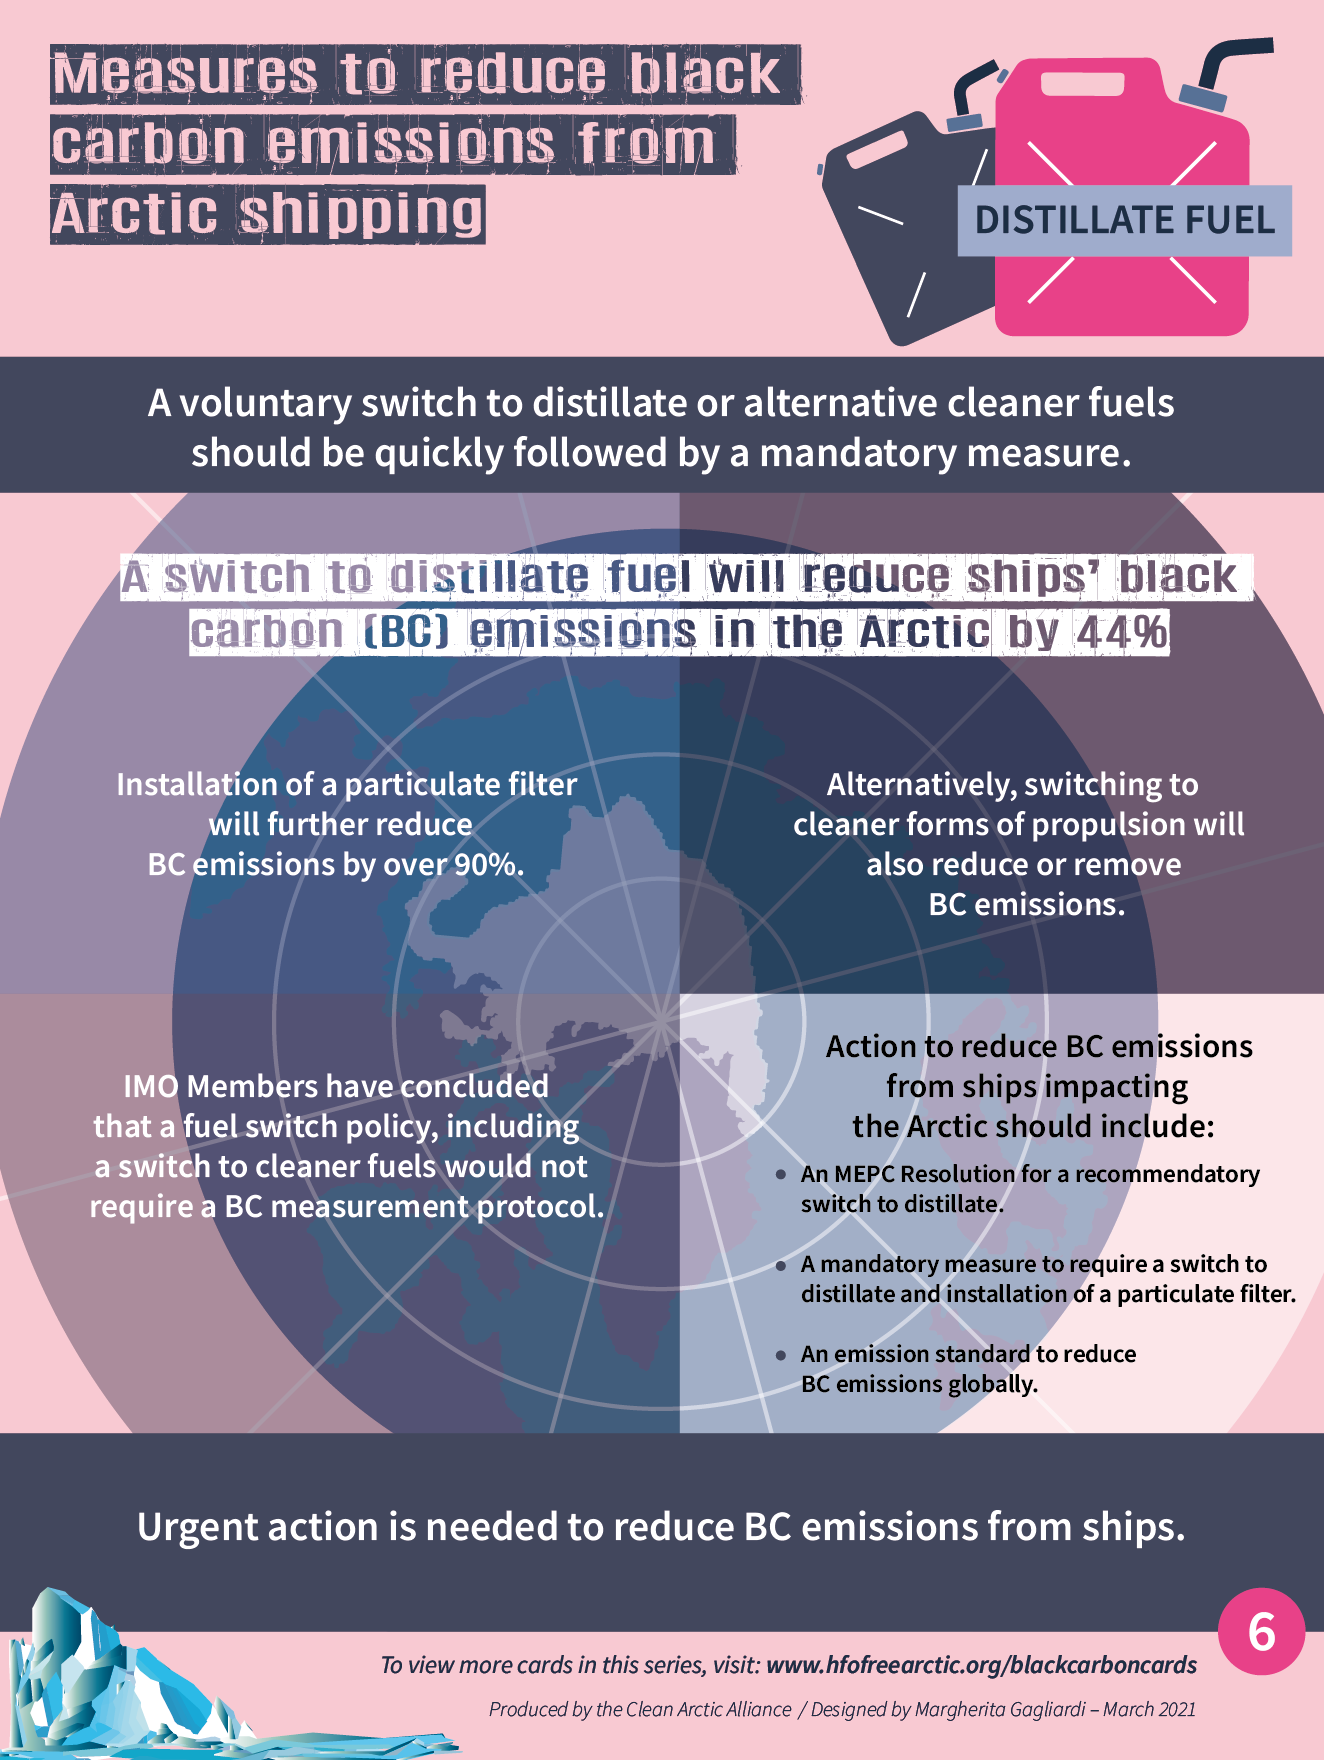 Measures to Reduce black carbon emissions from Arctic shipping